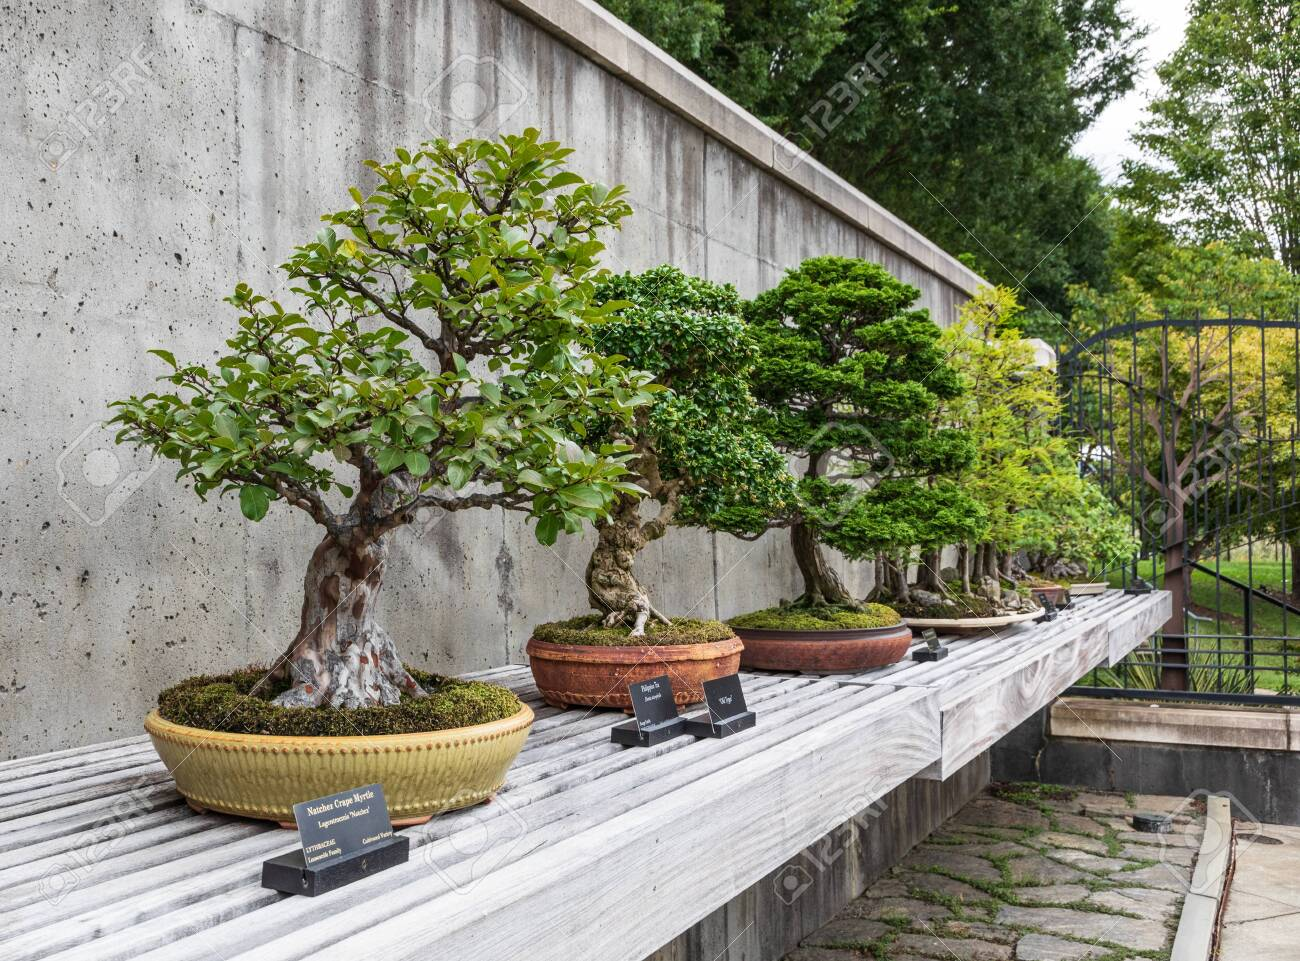 Asheville Nc Usa 26 Aug 2019 A Row Of Bonsai Trees In The Stock Photo Picture And Royalty Free Image Image 131041532